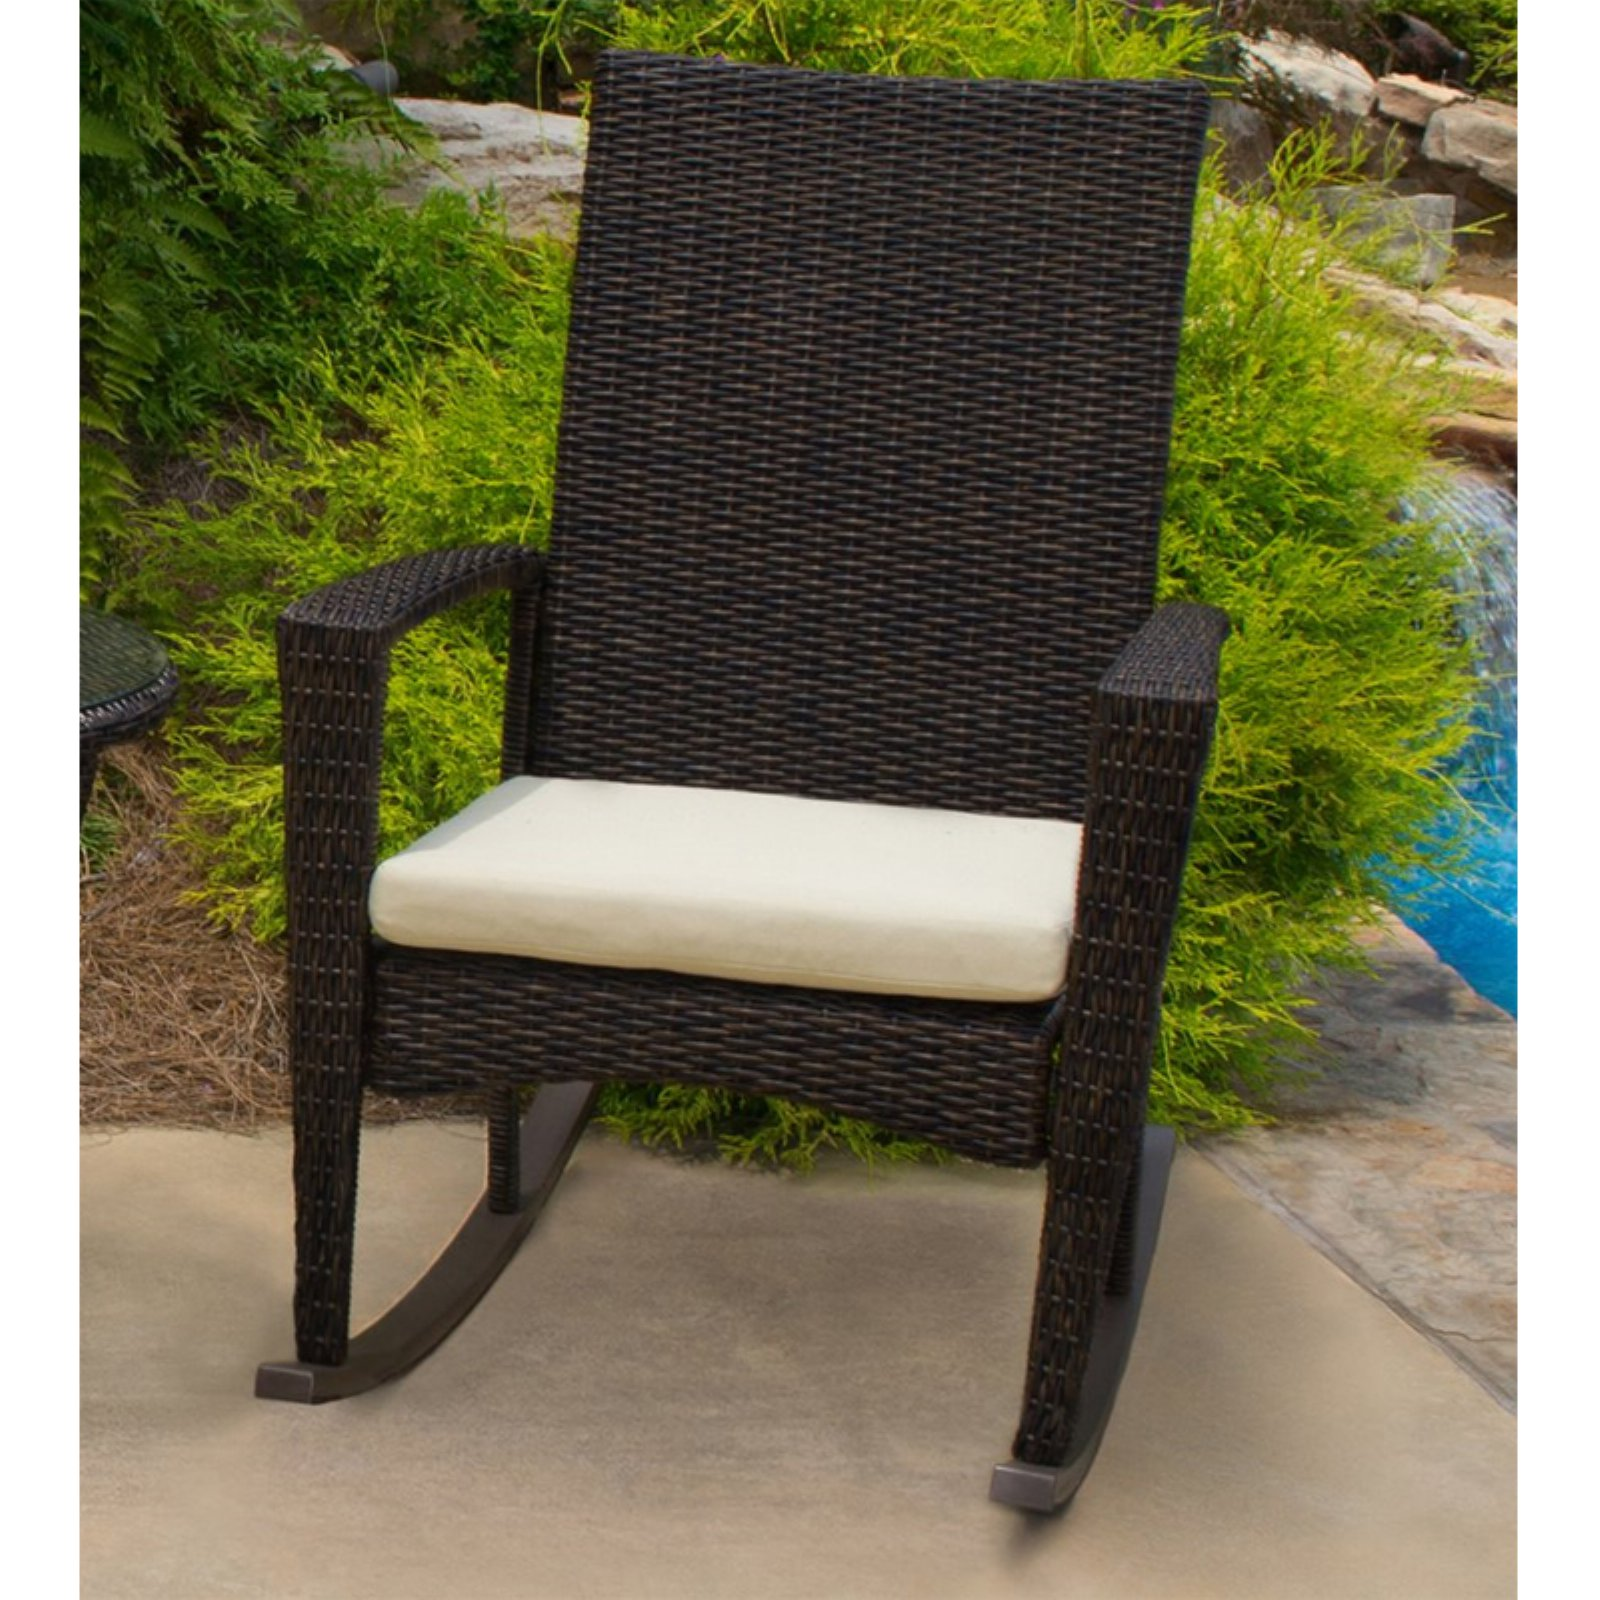 Tortuga Outdoor Bayview Wicker Rocking Chair with Cushion